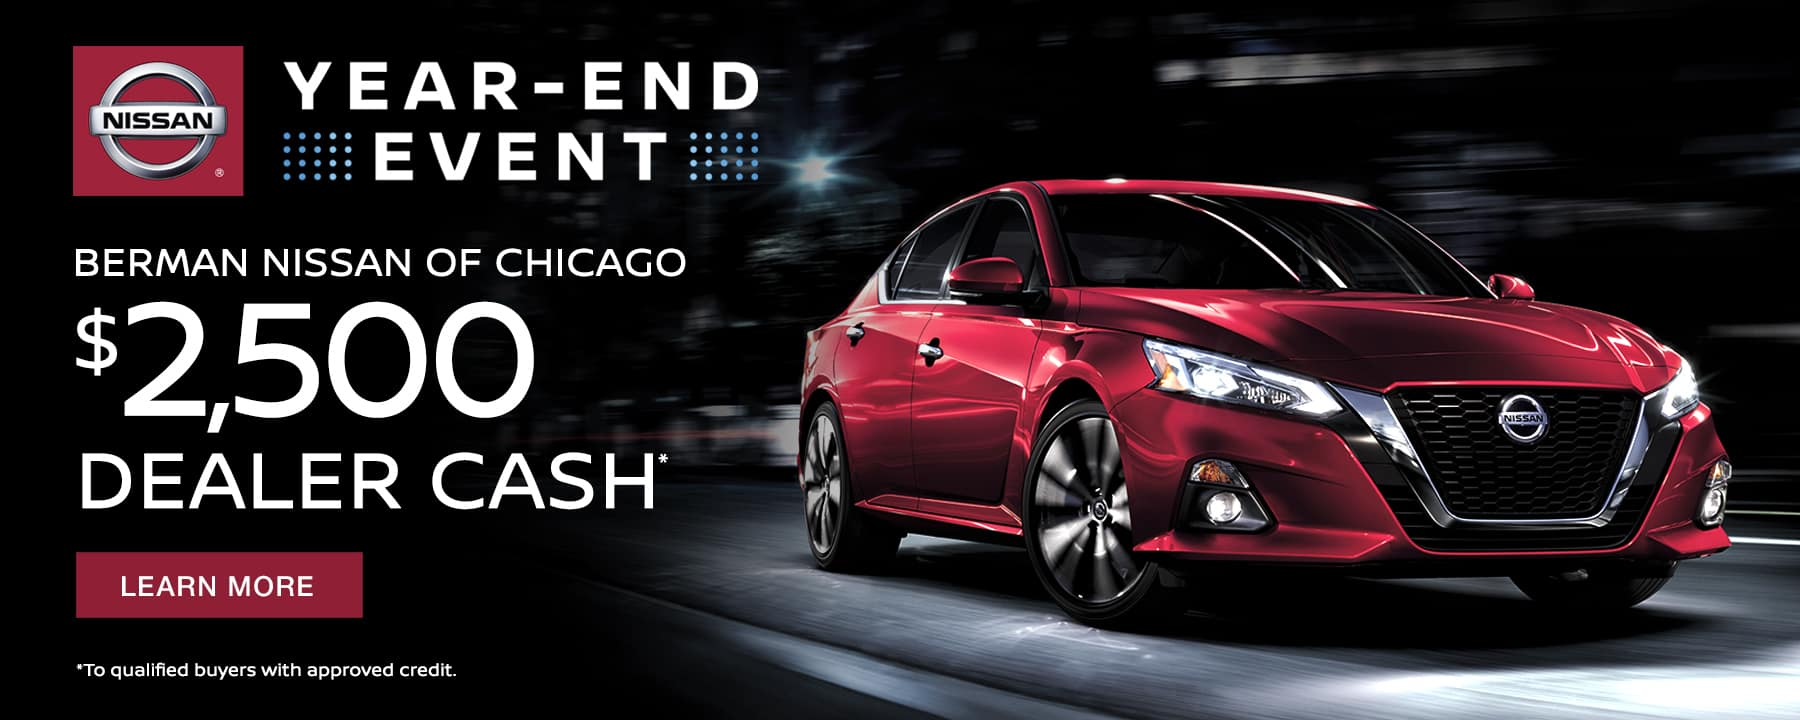 Get up to $2,500 Dealer Cash during our Year-End Event at Berman Nissan of Chicago!